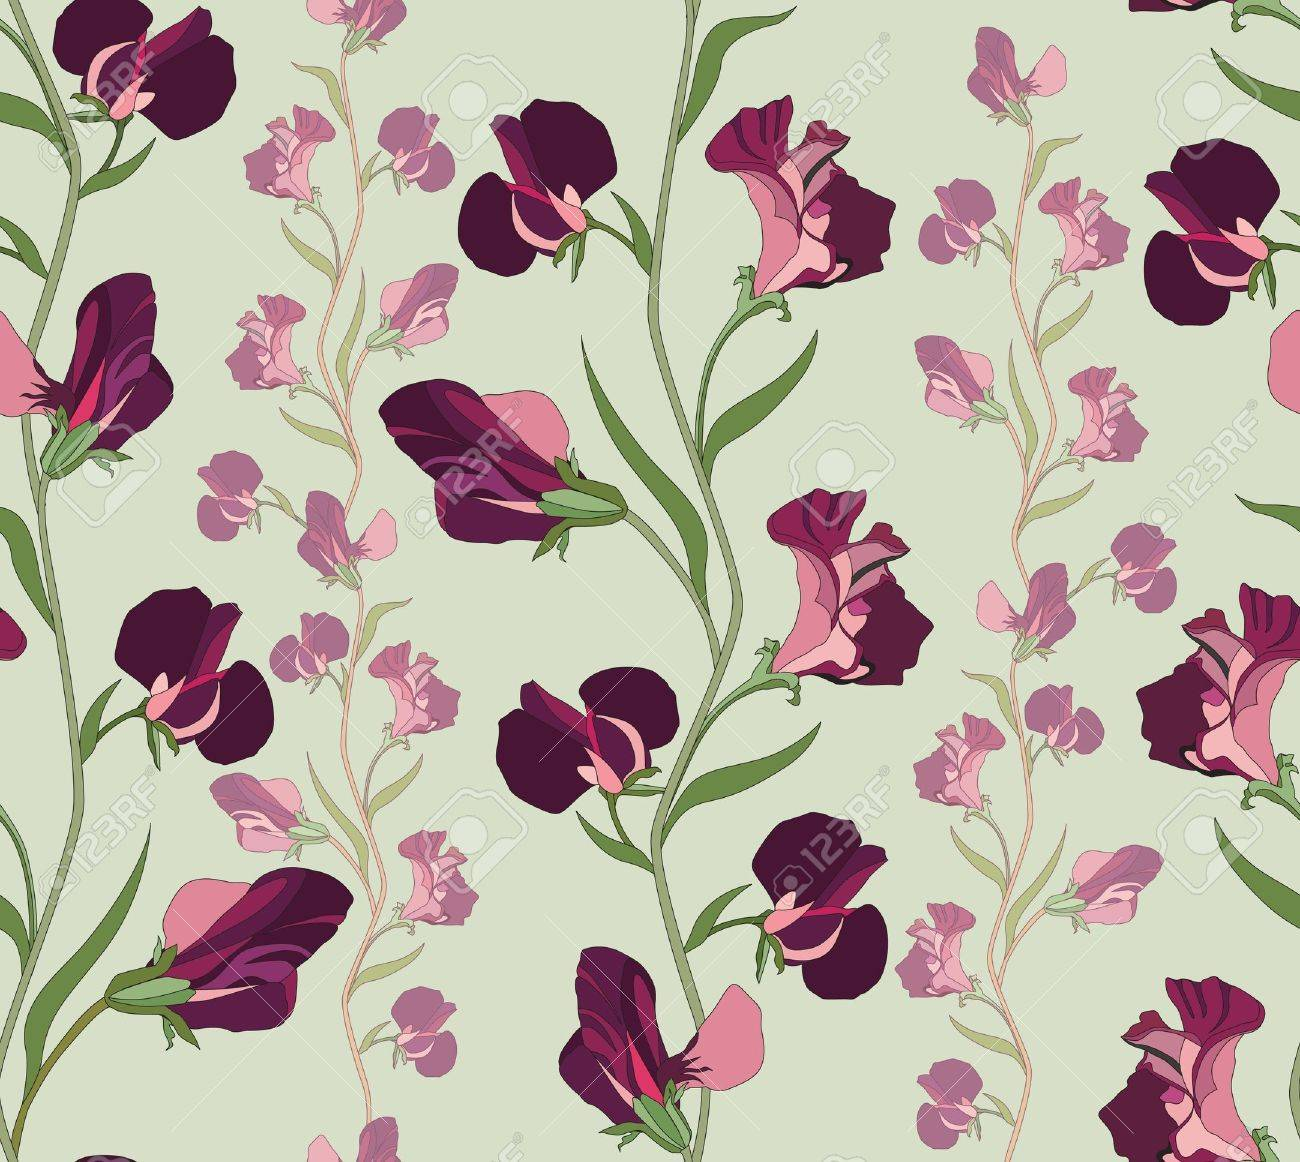 flower seamless background  floral seamless pattern with lilac and pink sweet pea Stock Vector - 19335173